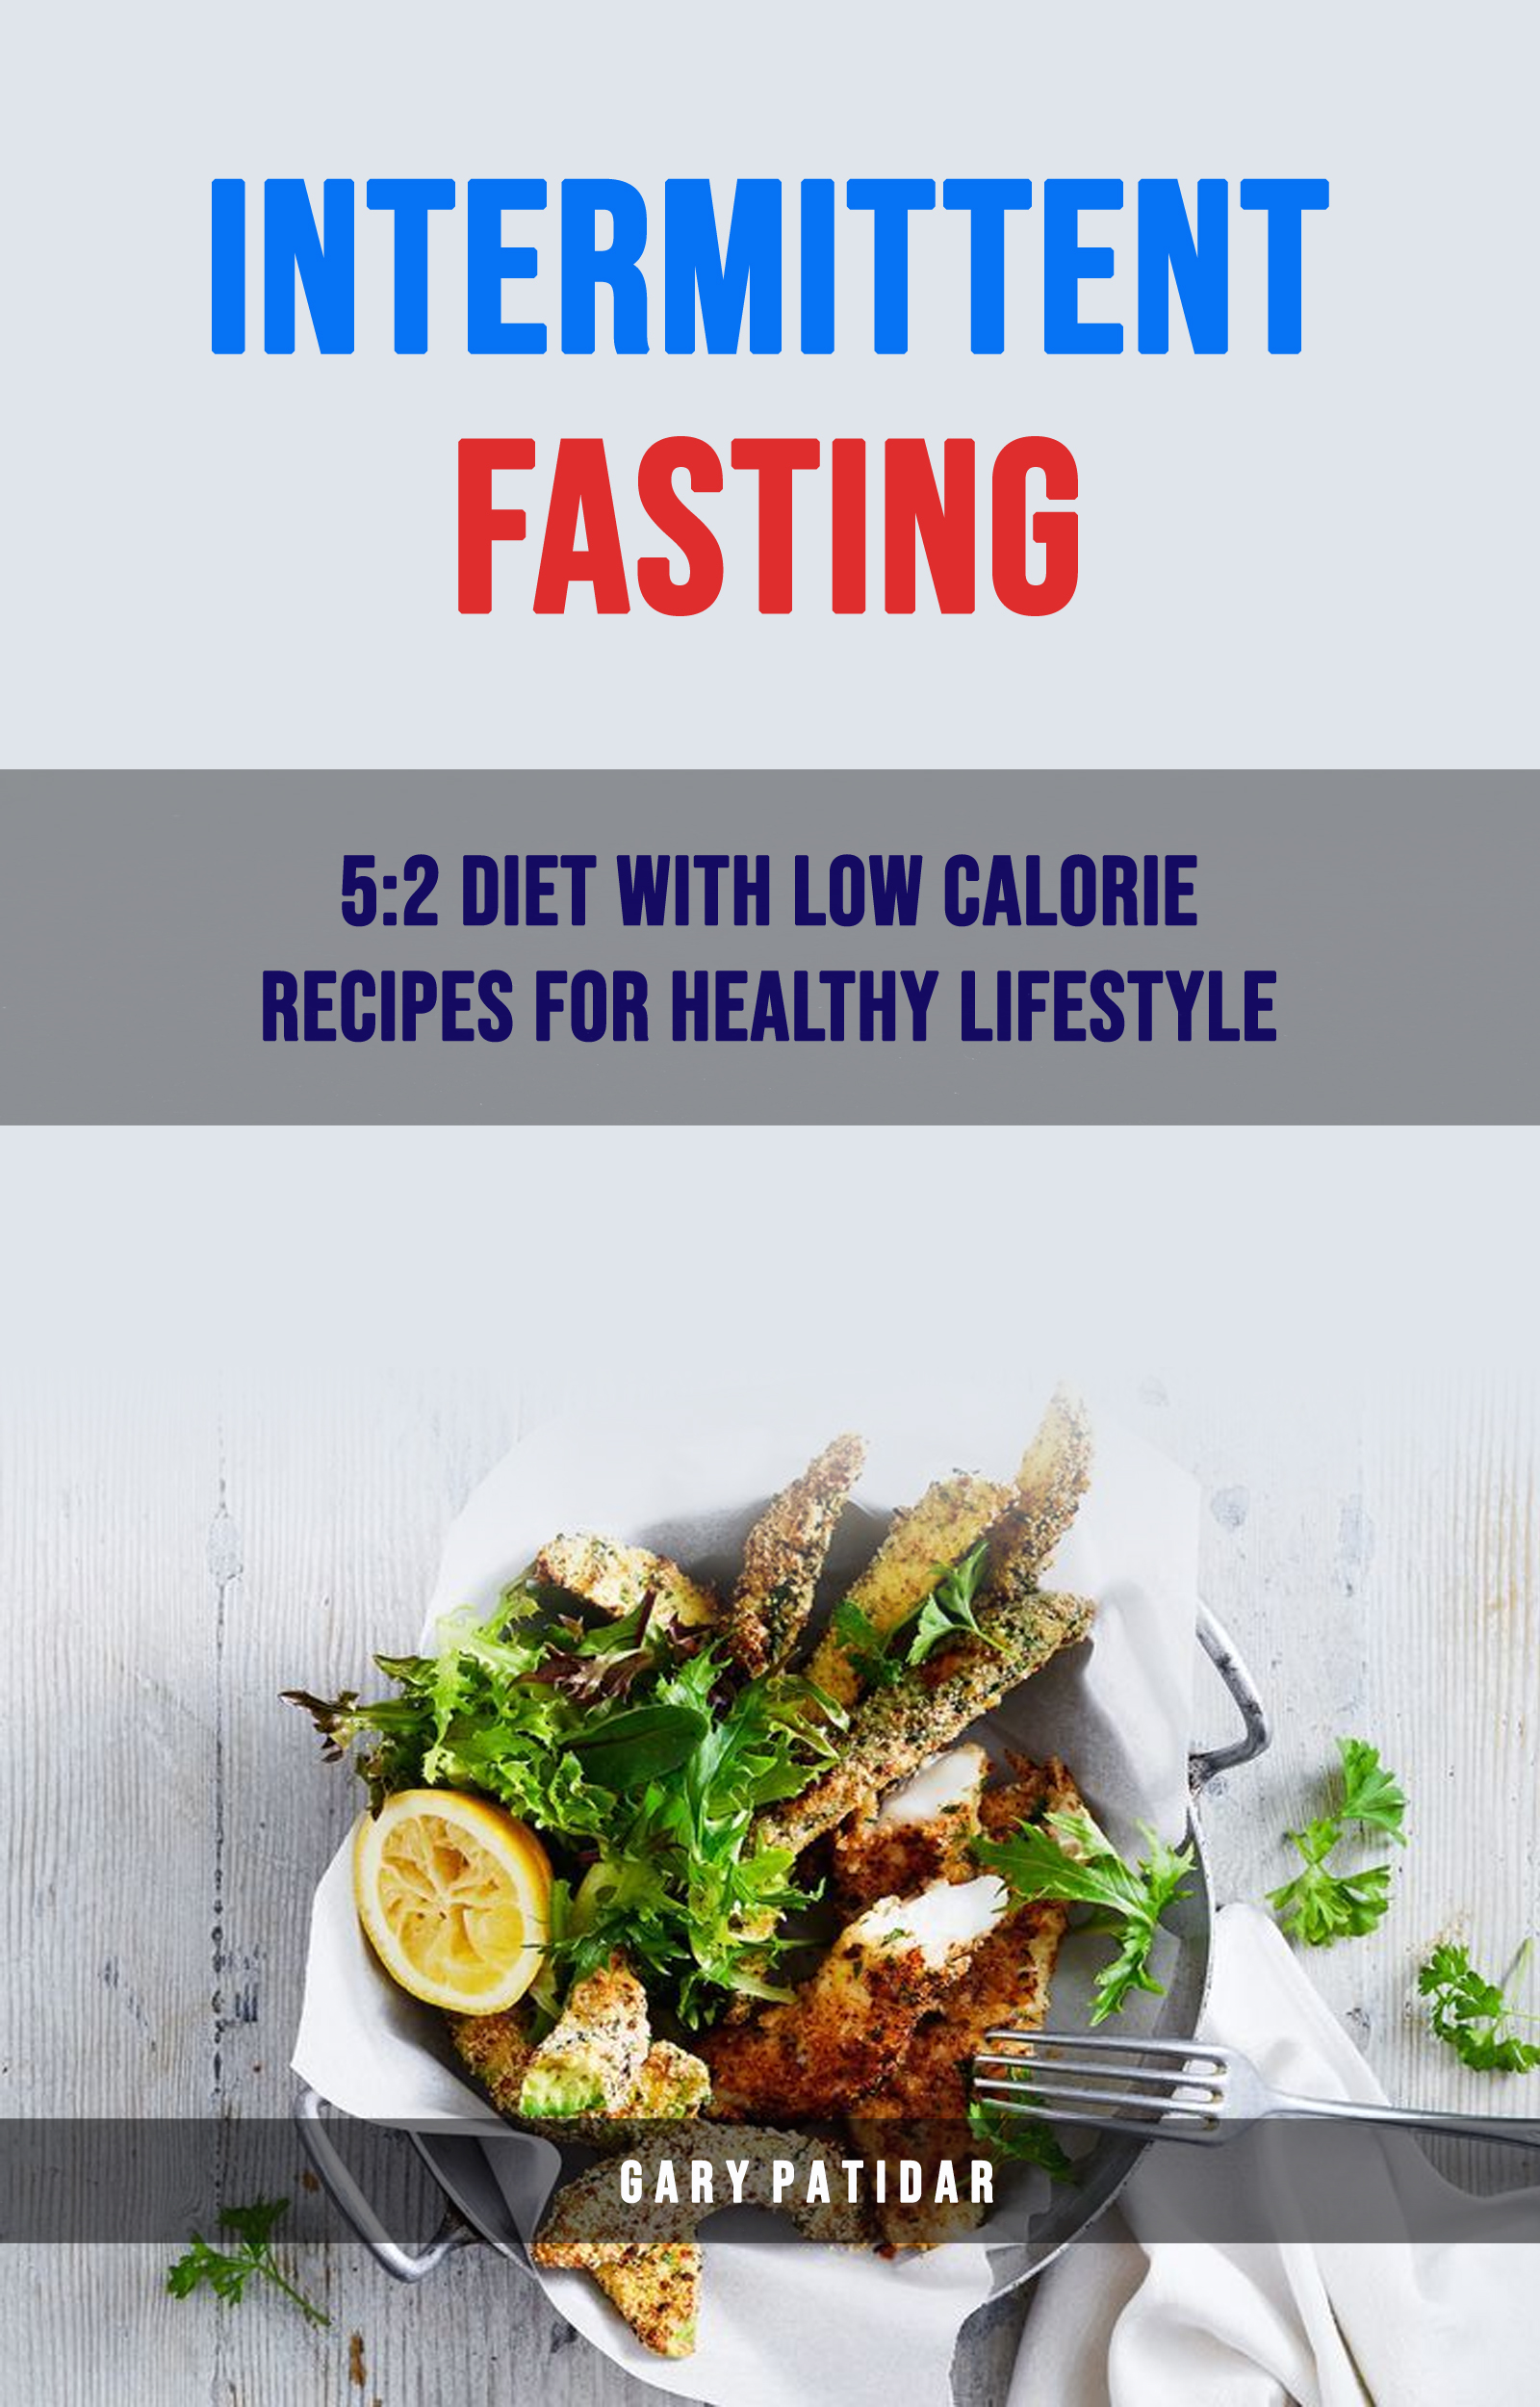 Intermittent fasting: 5:2 diet with low calorie recipes for healthy lifestyle